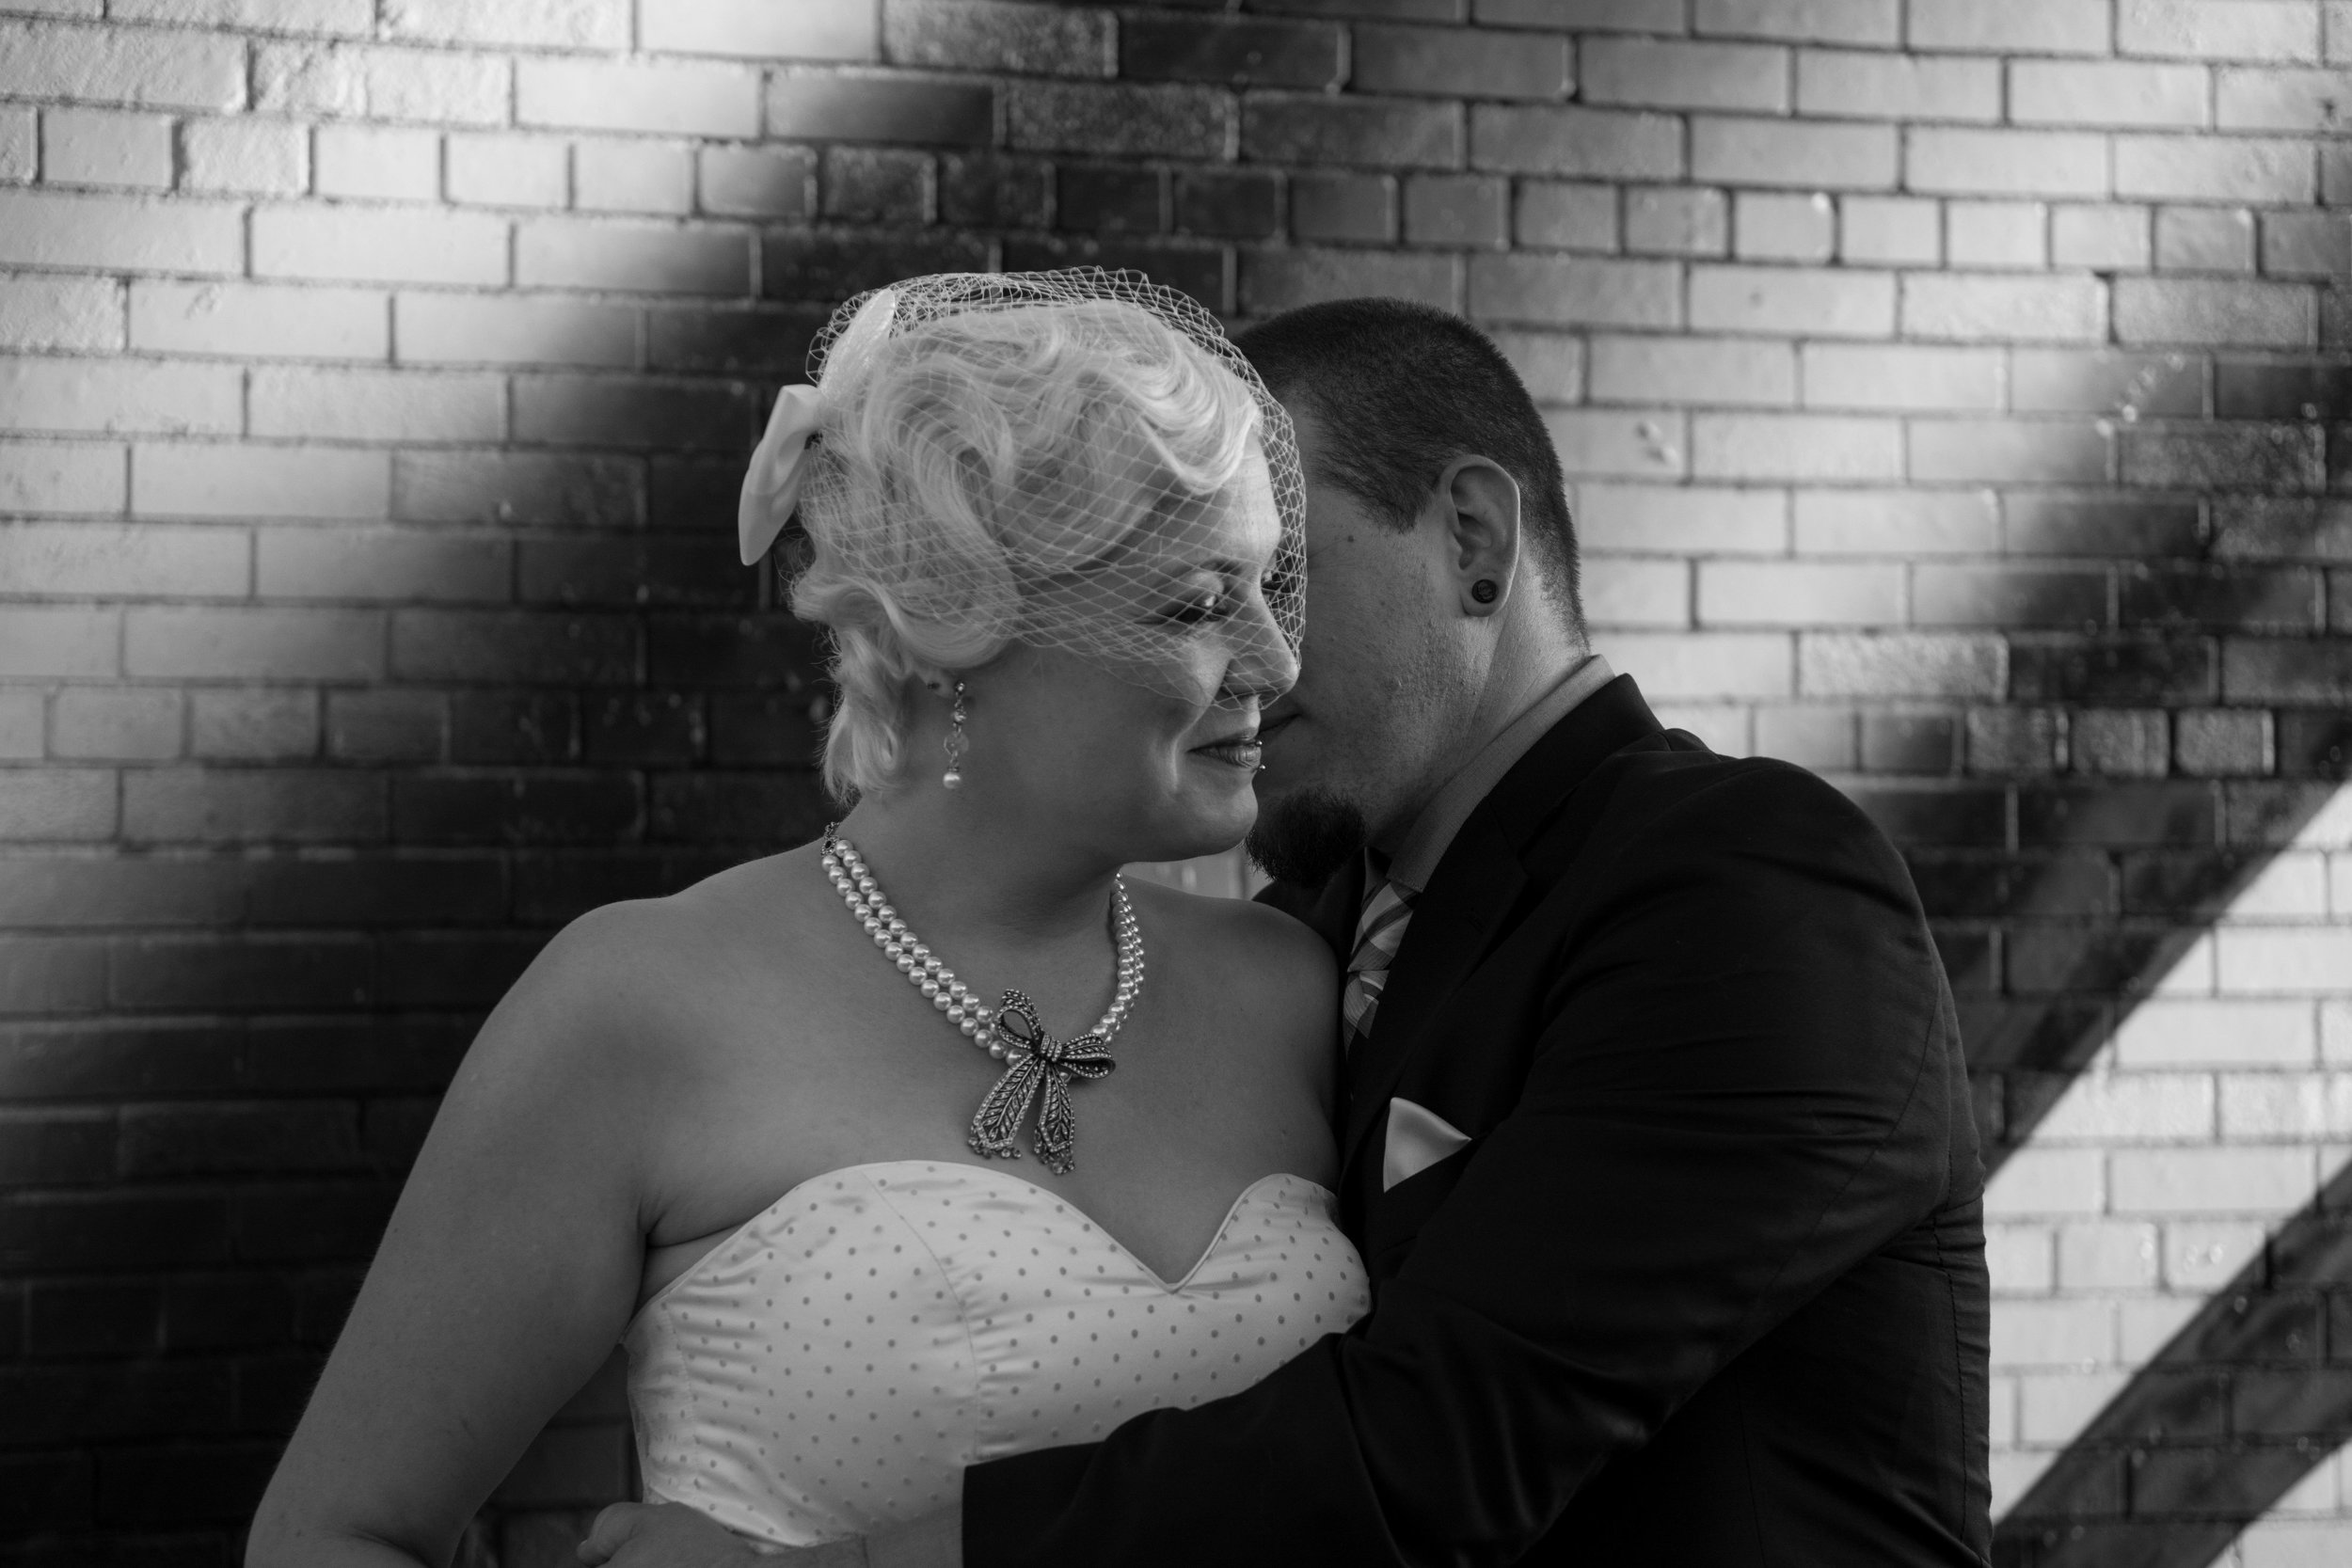 amanda+tom_wedding (385 of 592).jpg